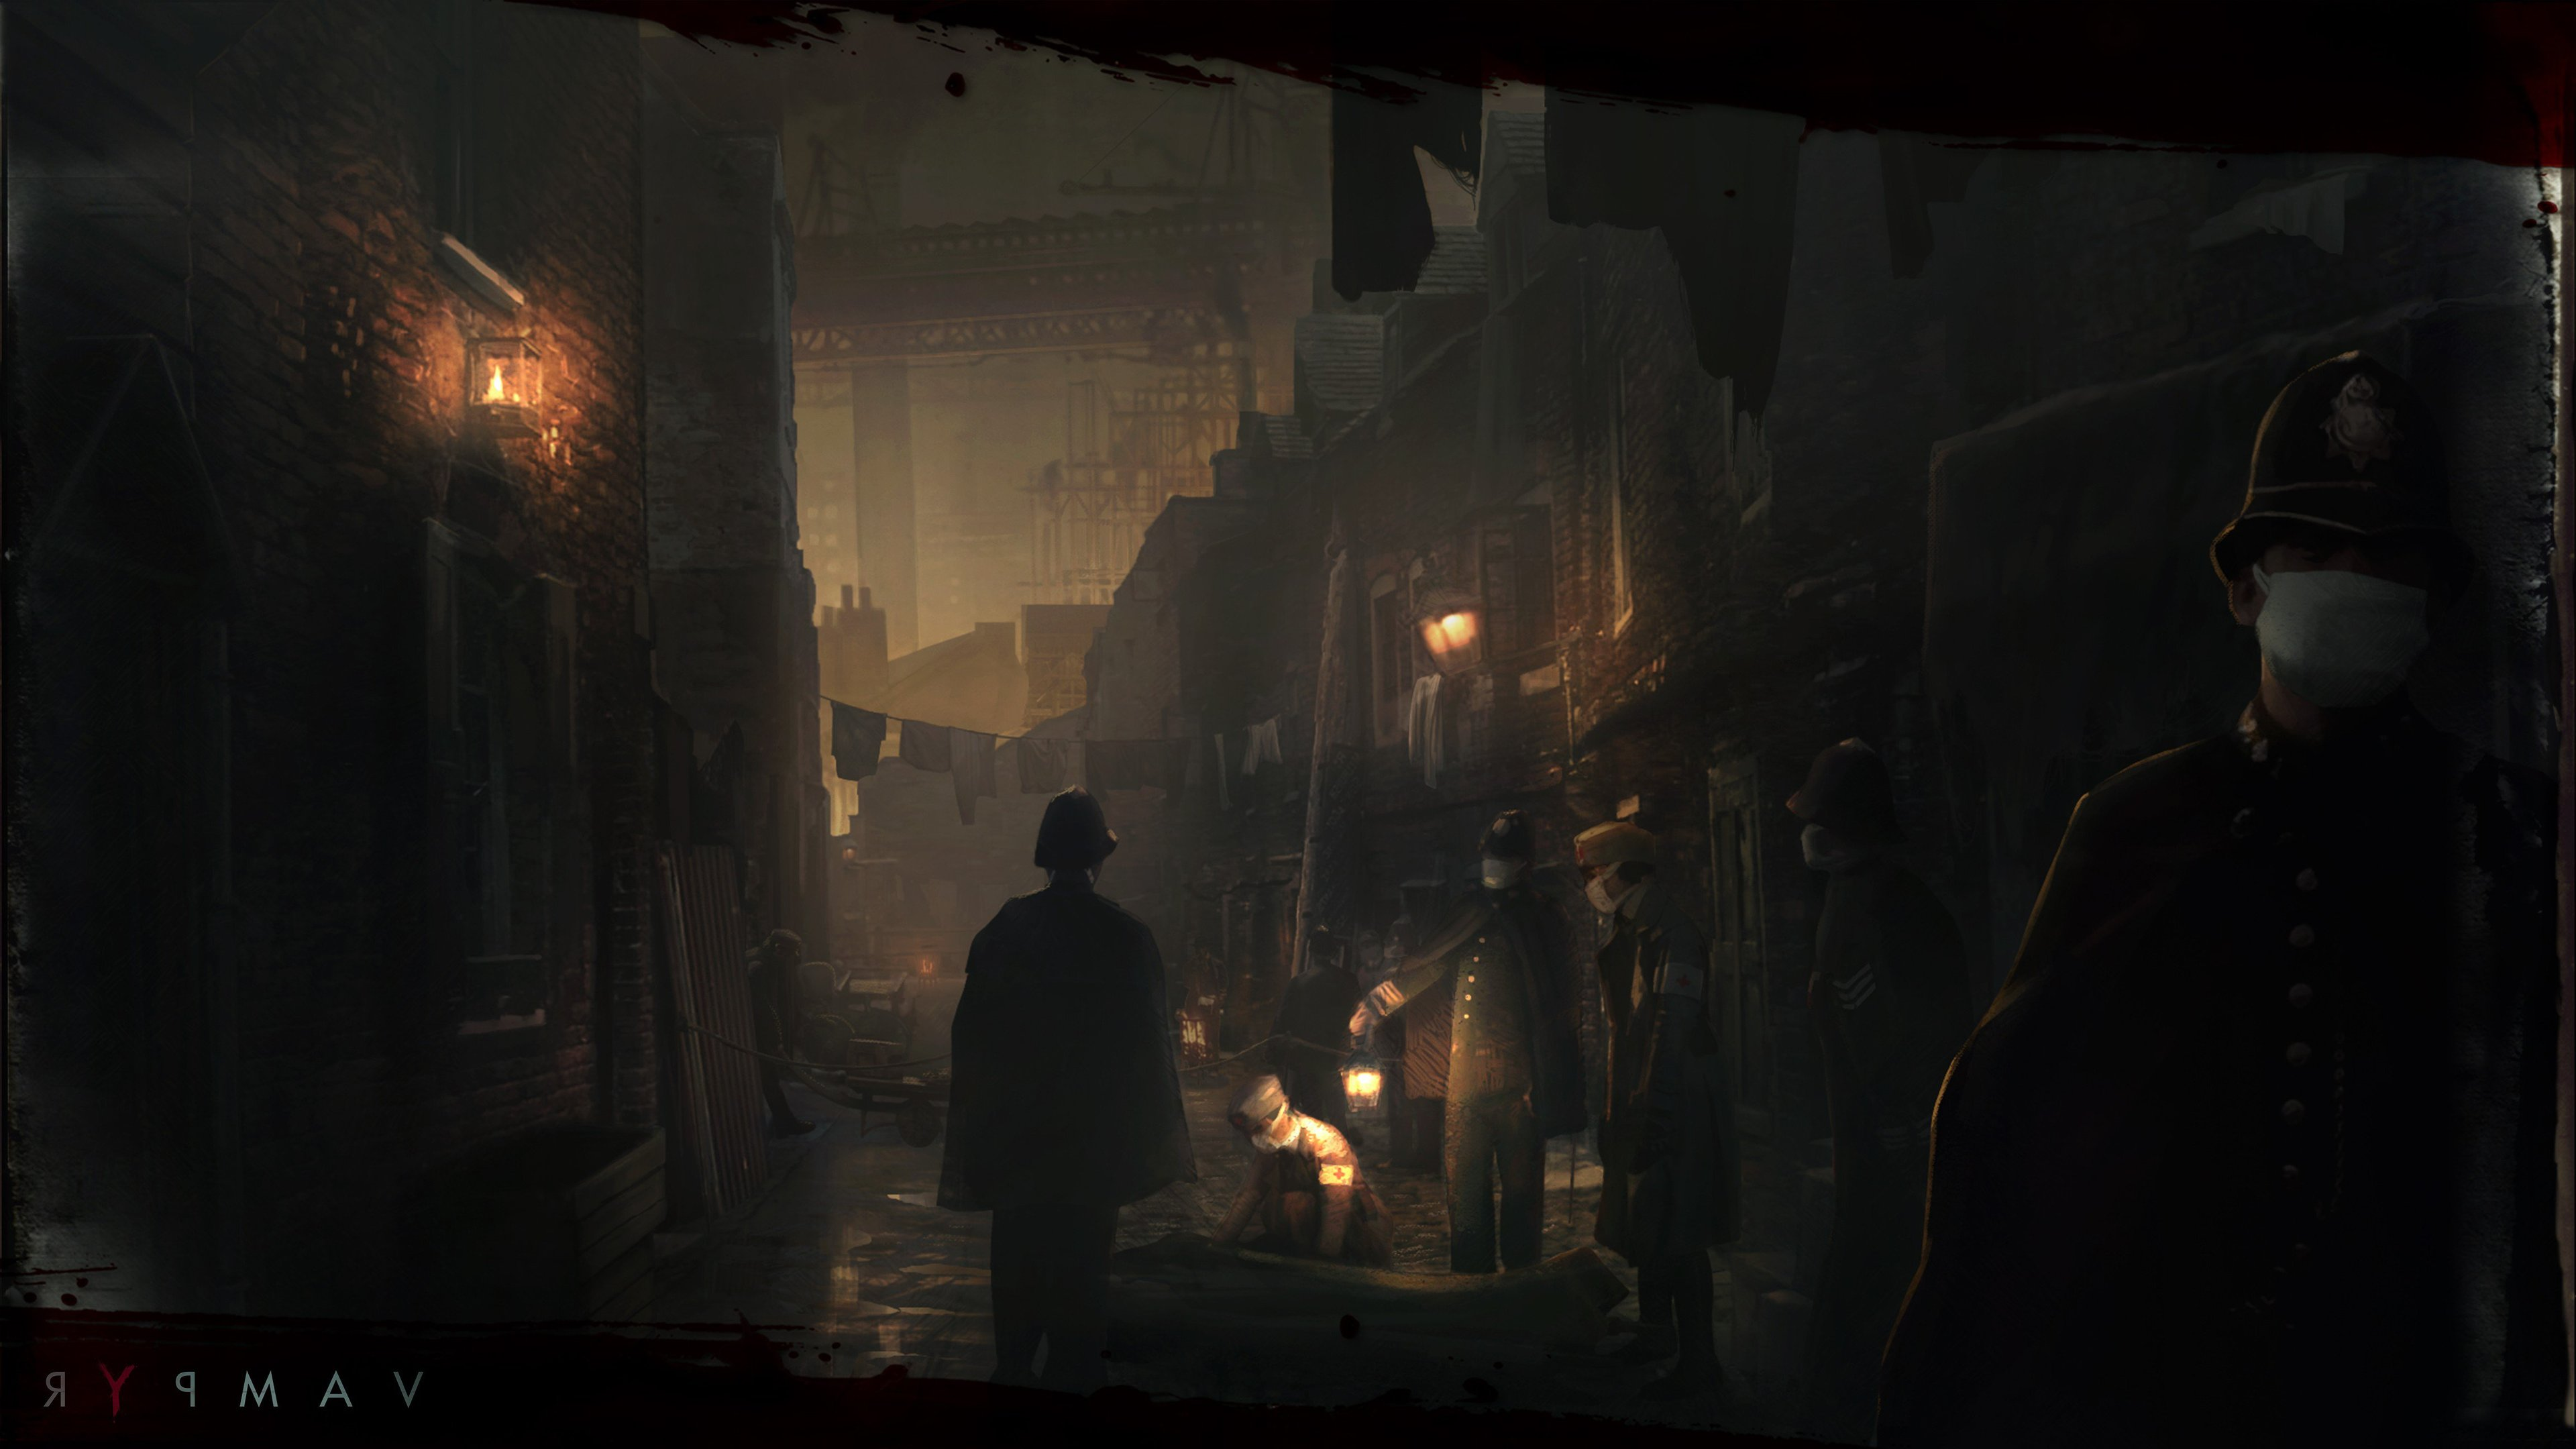 2017 vampyr video game 1535967776 - 2017 Vampyr Video Game - xbox games wallpapers, vampyr wallpapers, ps games wallpapers, pc games wallpapers, games wallpapers, 2017 games wallpapers